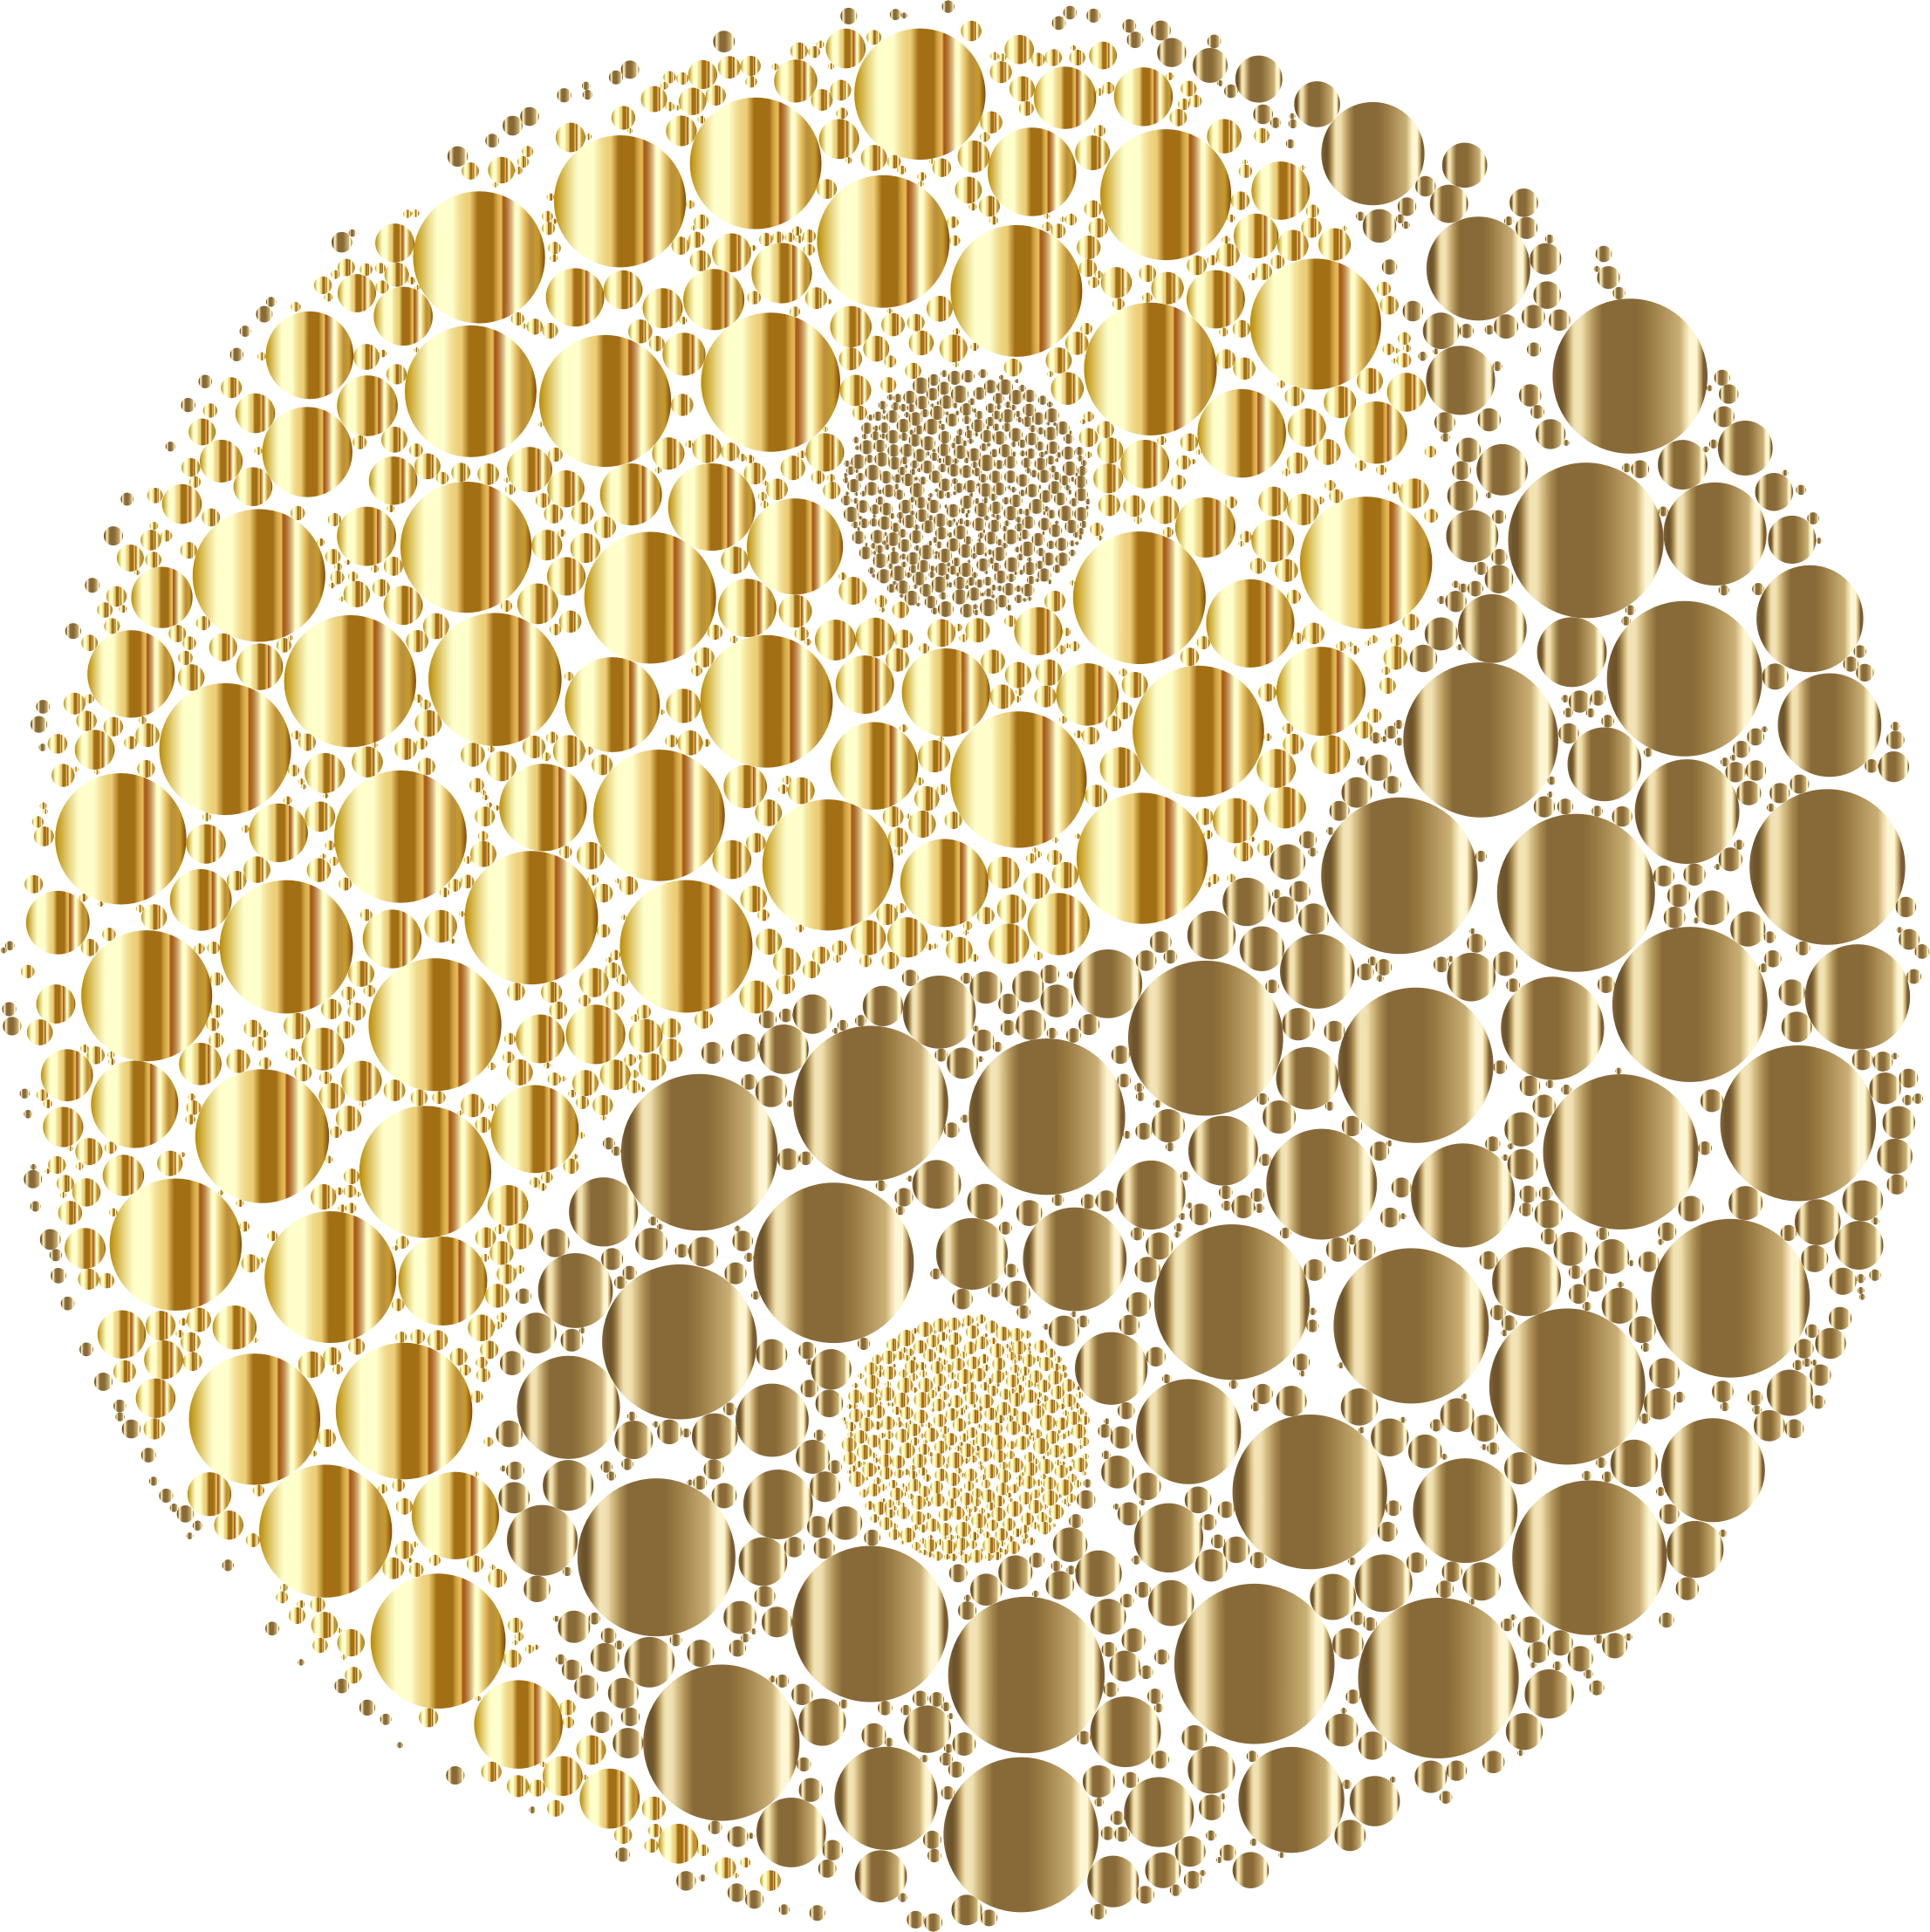 Golden Circles Yin Yang No Background by GDJ